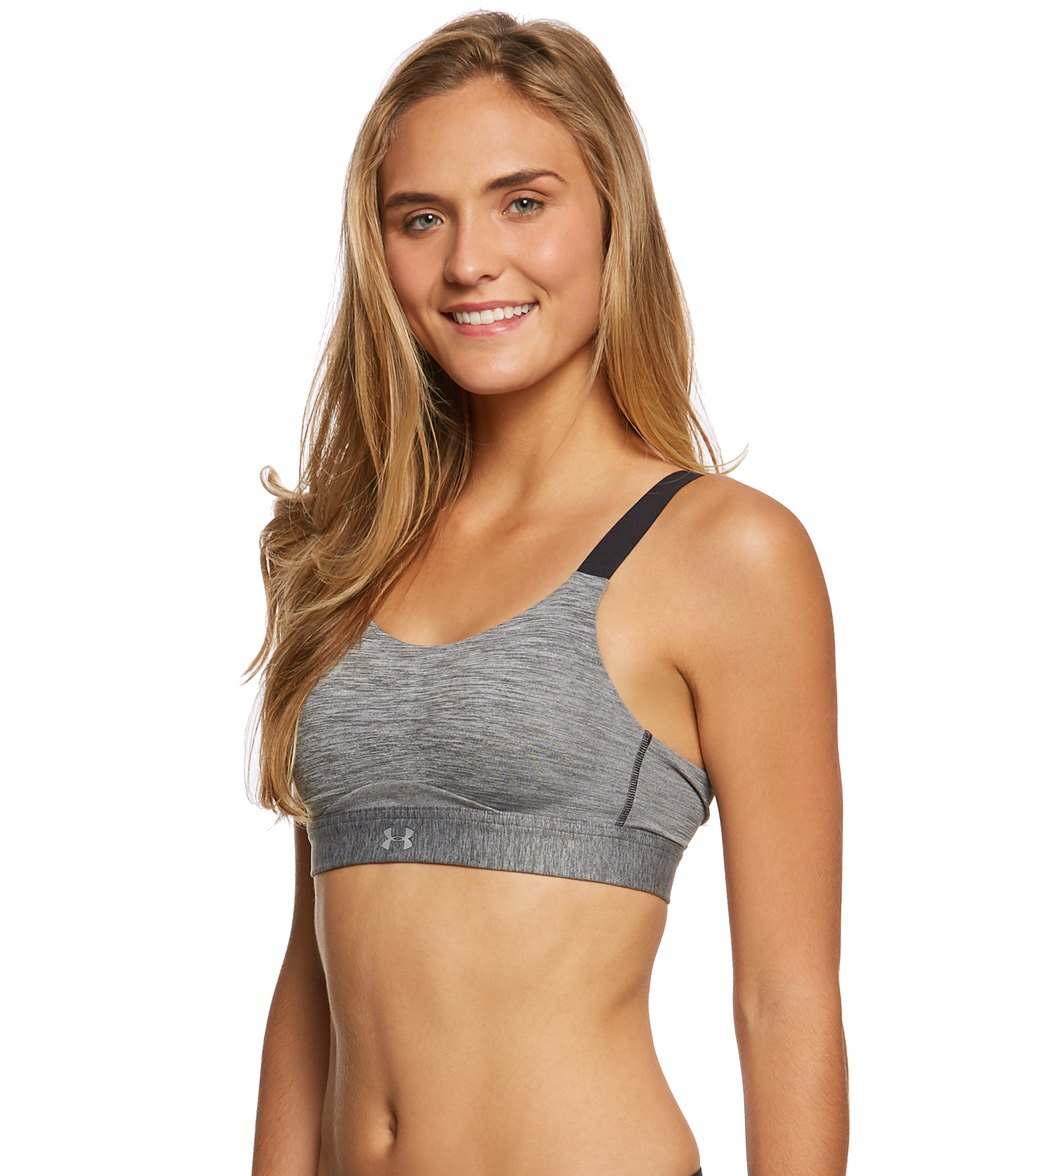 eff250afda Under Armour Women s Eclipse High Heather Sports Bra at SwimOutlet.com -  Free Shipping